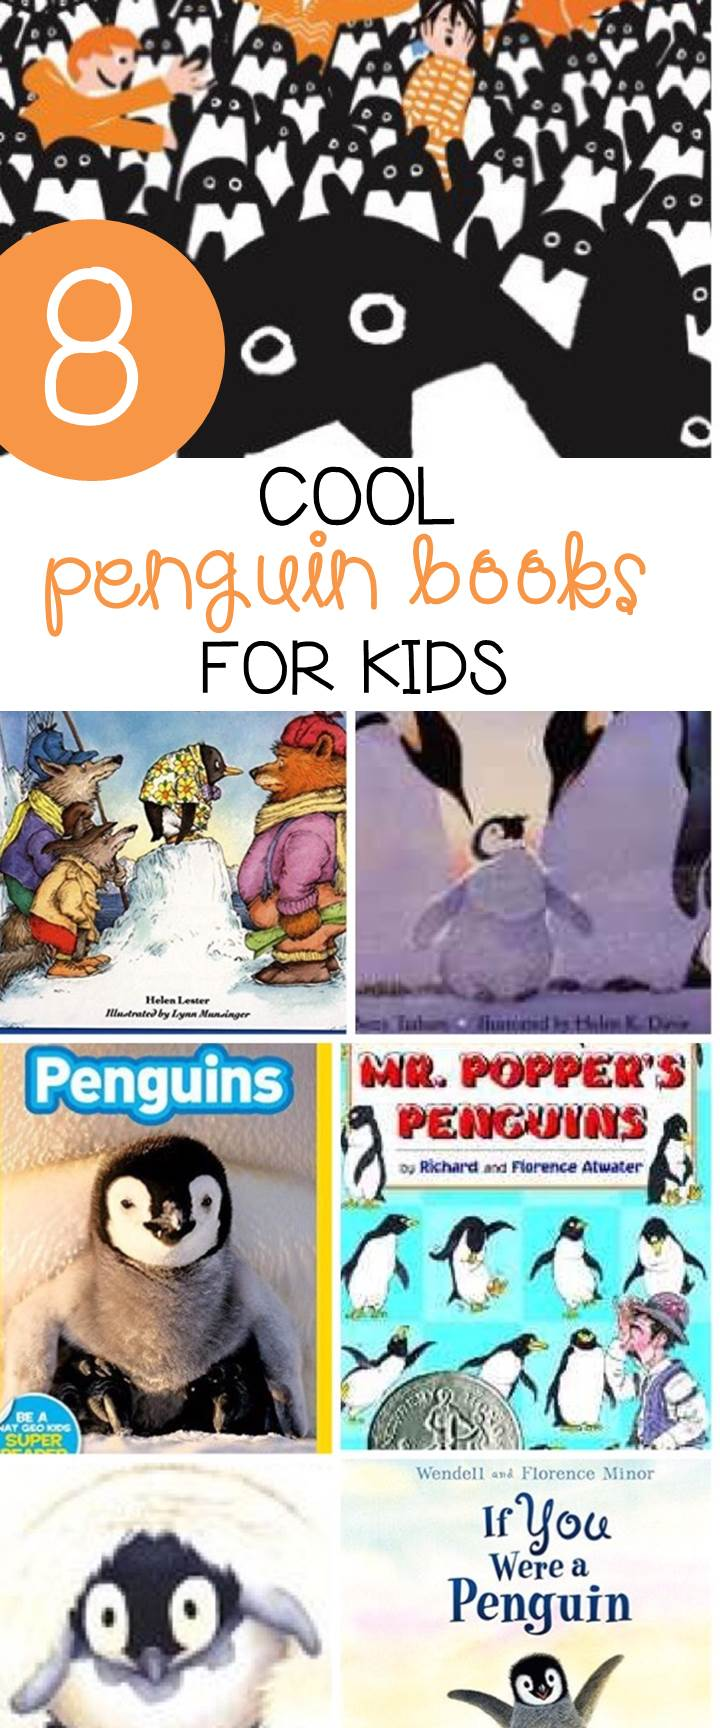 These awesome penguin books for kids are so fun for winter read alouds or as supplements to penguin activities in the classroom!